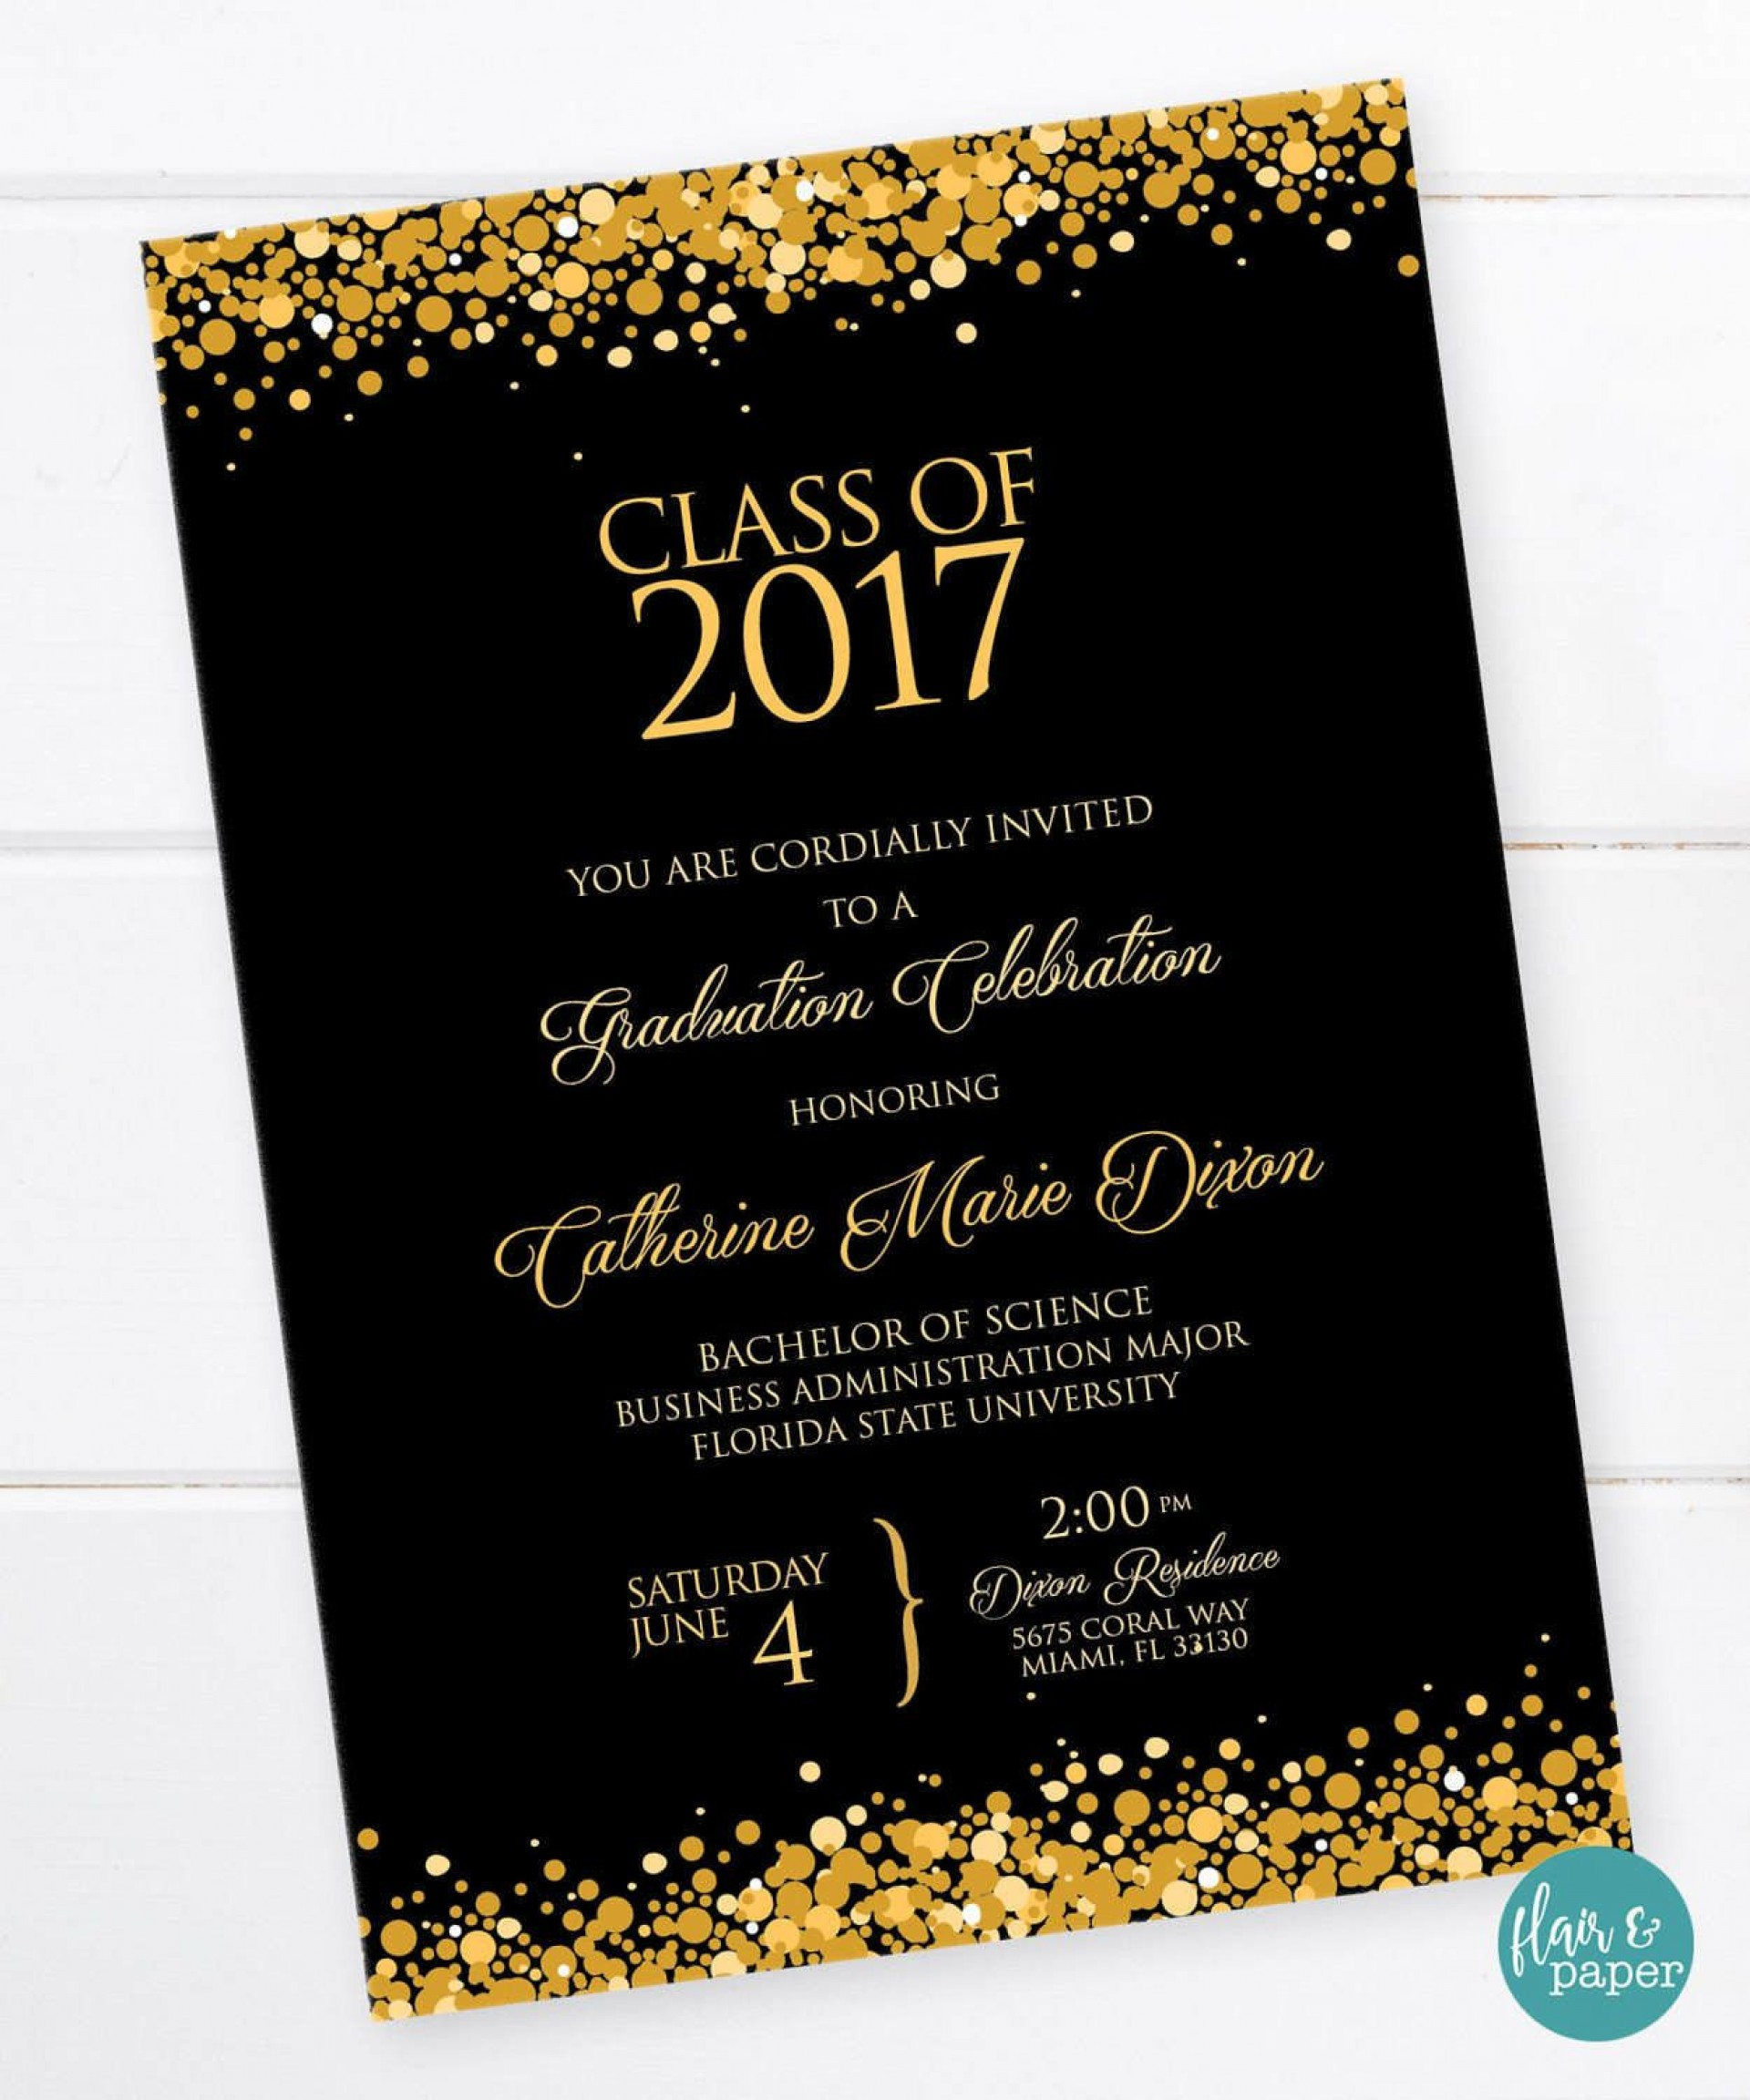 001 Shocking College Graduation Invitation Template Idea  Templates Free Party1920